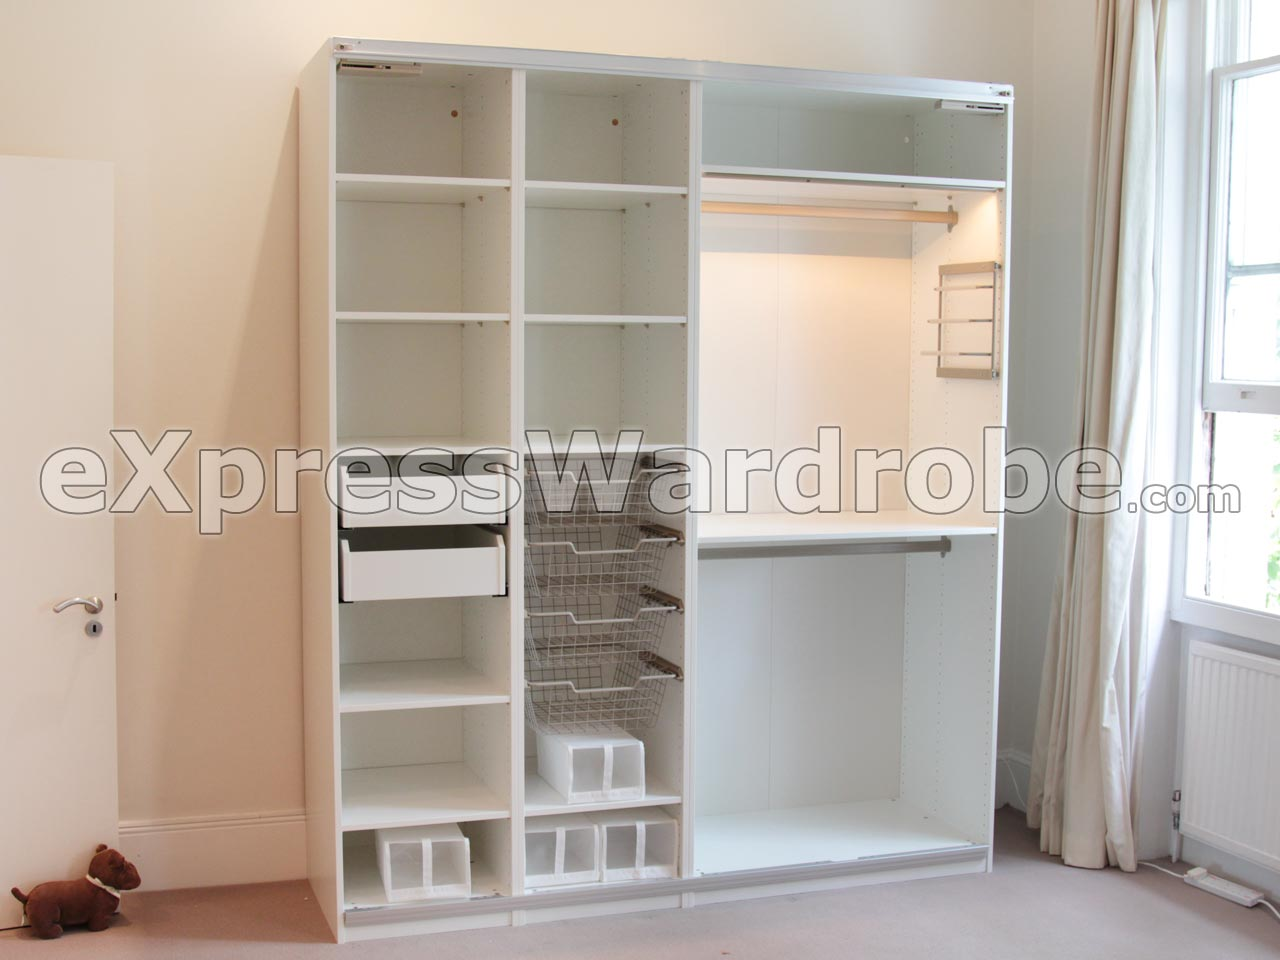 Diy Kitchen Island Ikea Cabinets ~ Wardrobes Design Ideas  Wardrobe Gallery  Wardrobe Designs